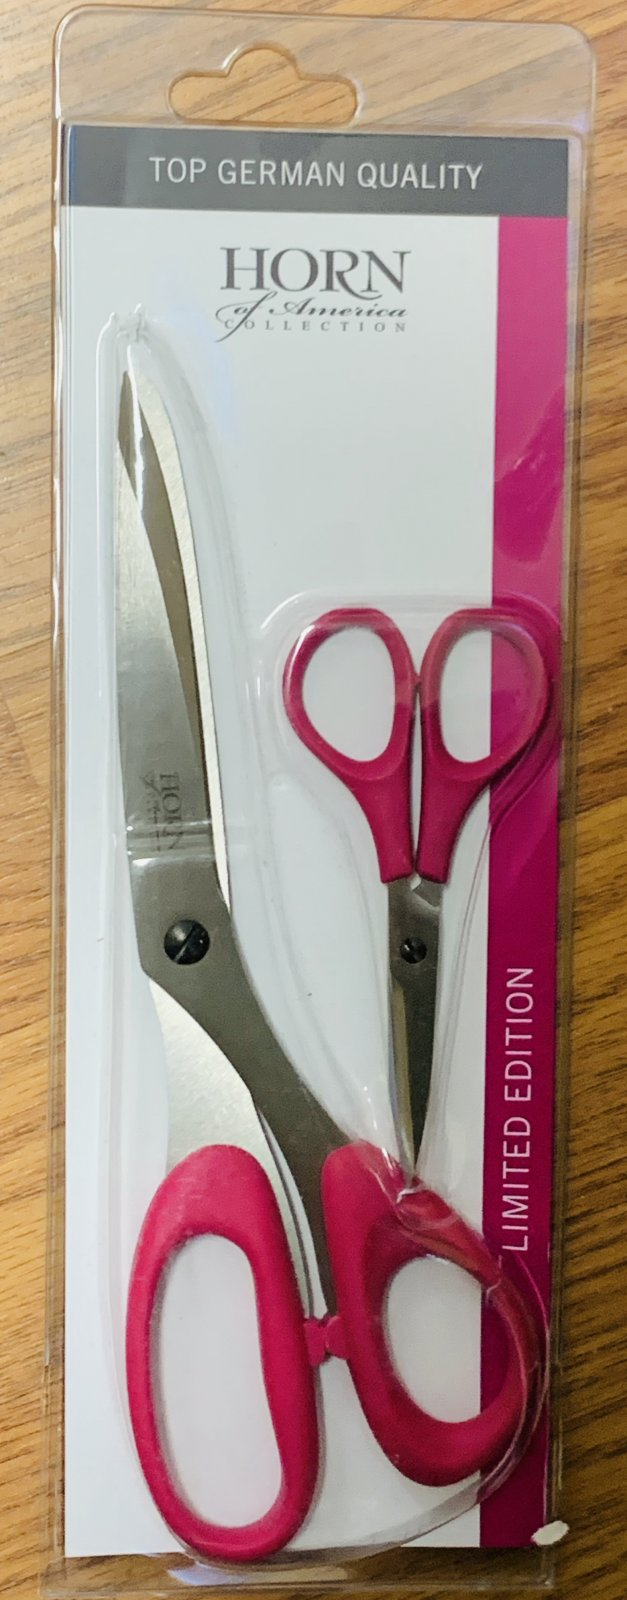 Horn of America Collection Scissor Set Limited Edition